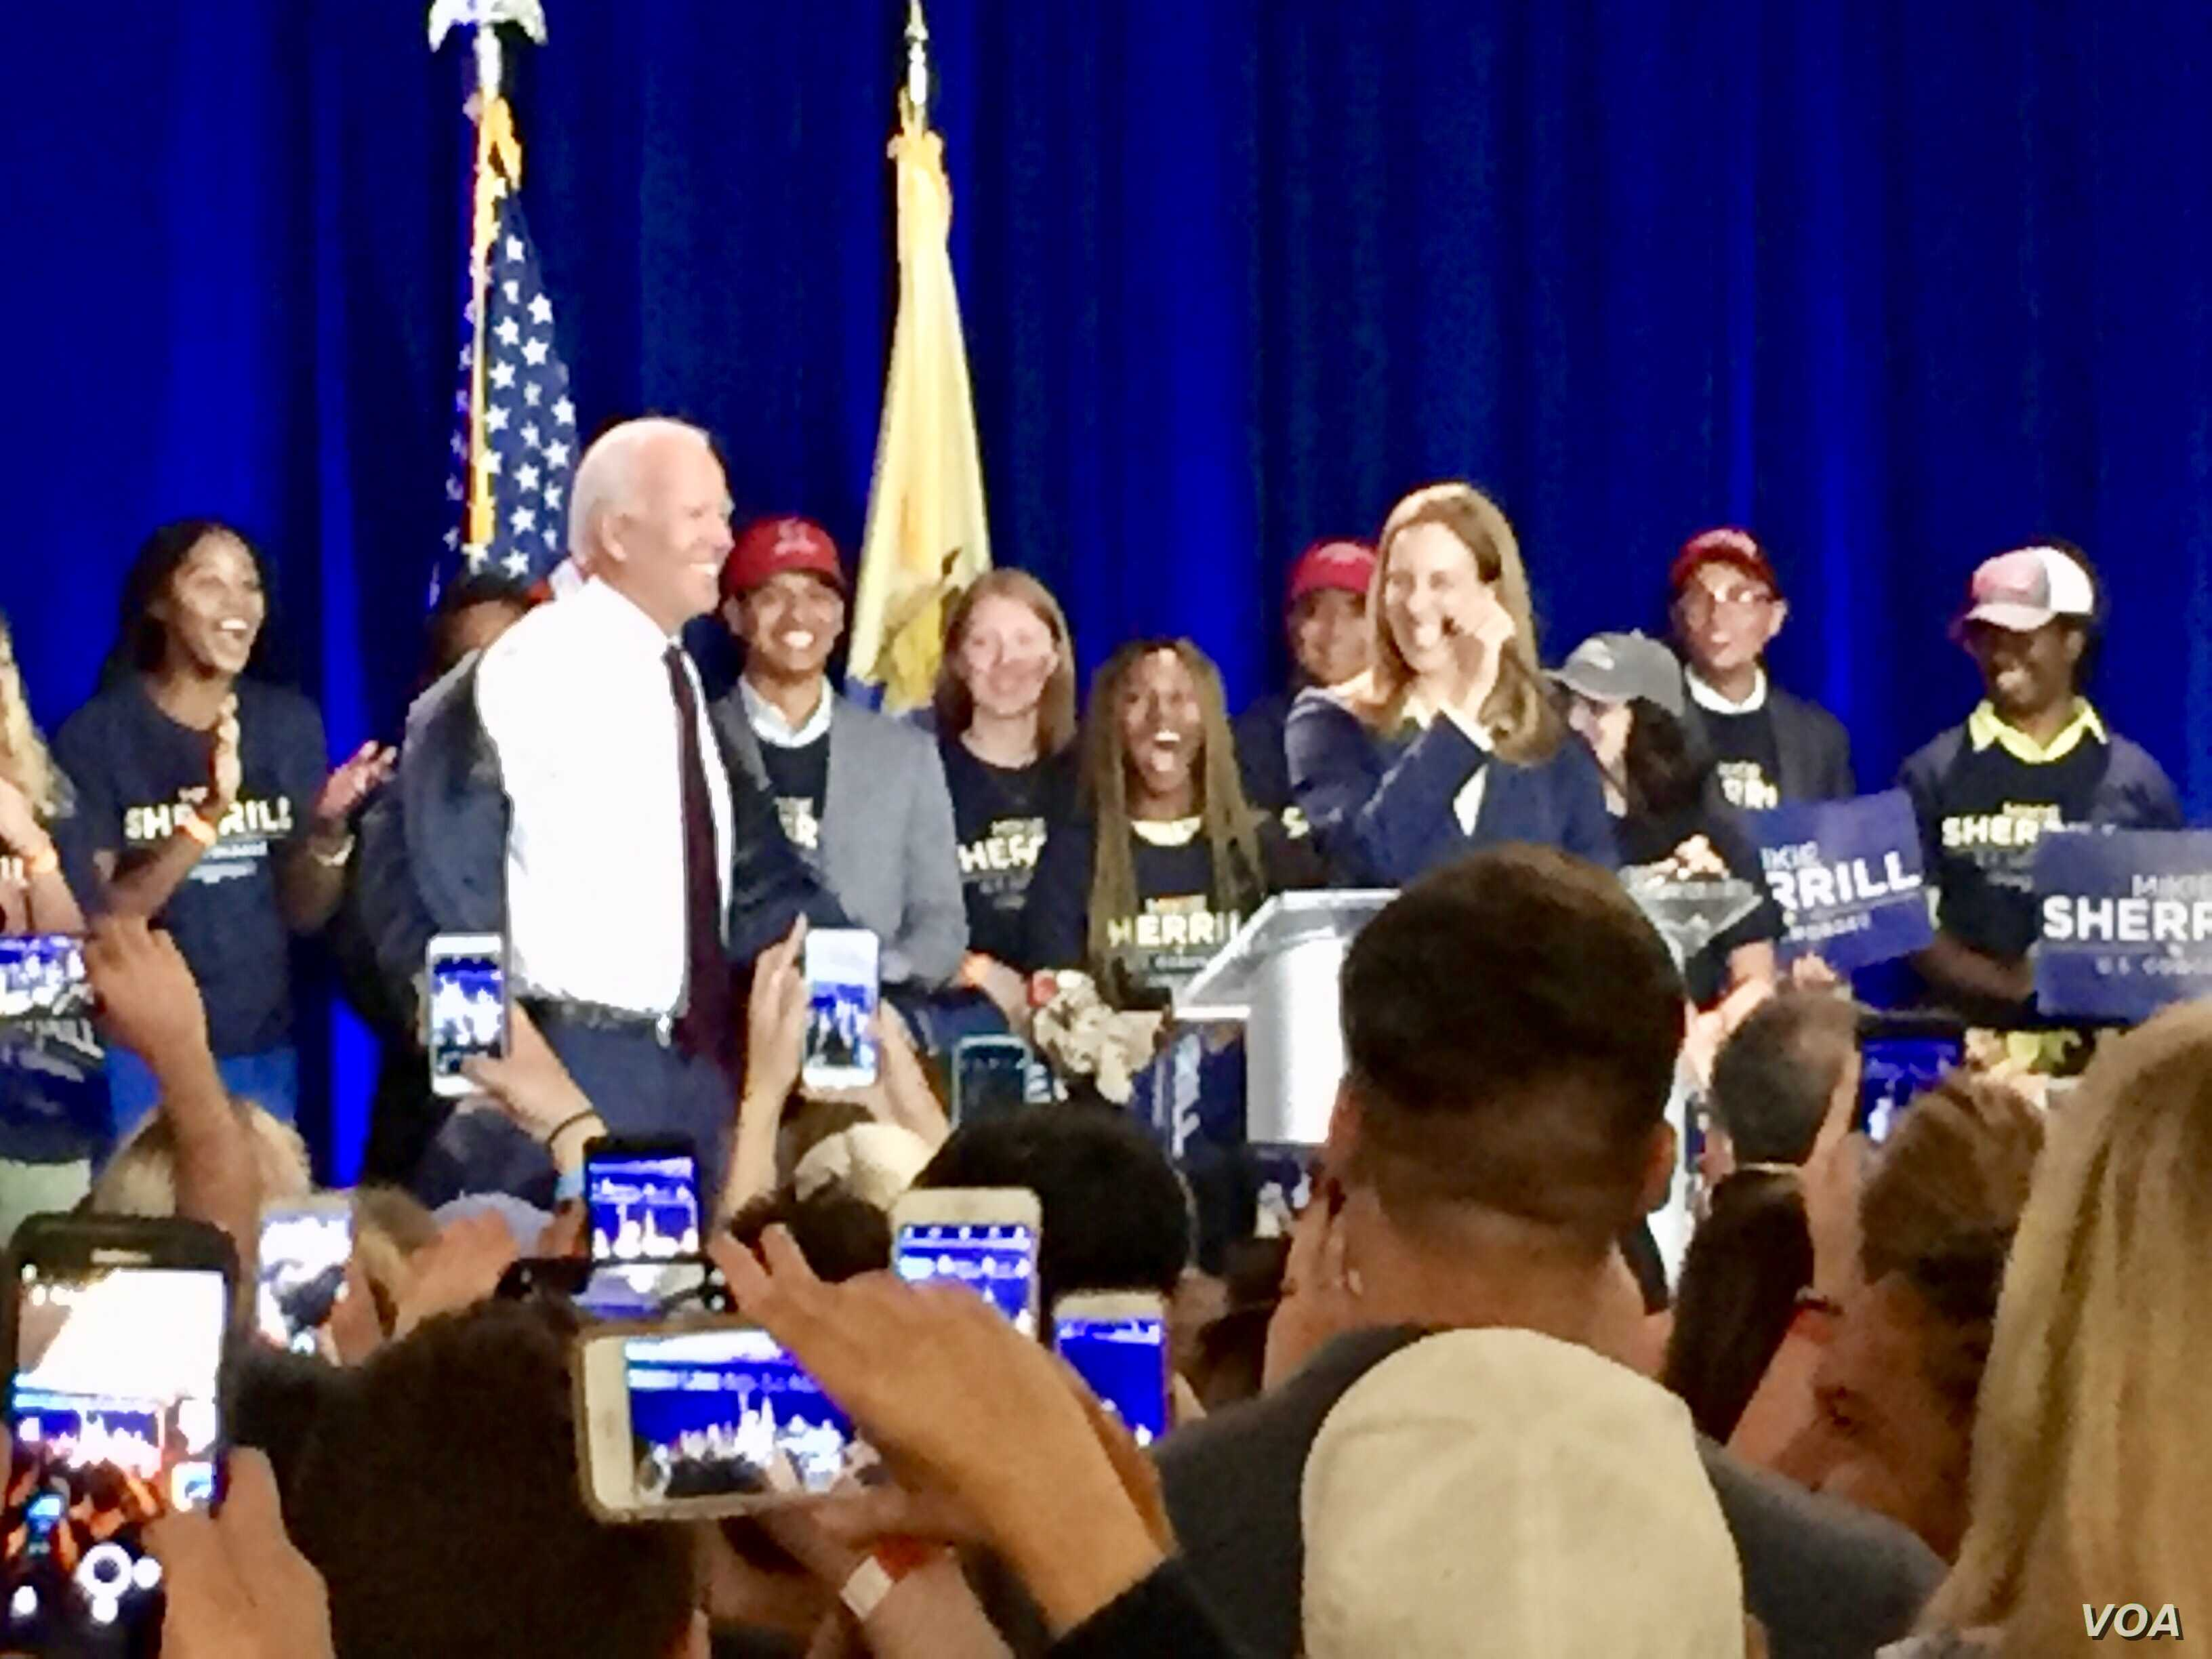 Former Vice President Joe Biden campaigned with Mikie Sherrill a New Jersey Democratic candidate for Congress. Sherrill, a former Navy helicopter pilot and federal prosecutor, is running for an open seat in a tight race. (C. Presutti/VOA)